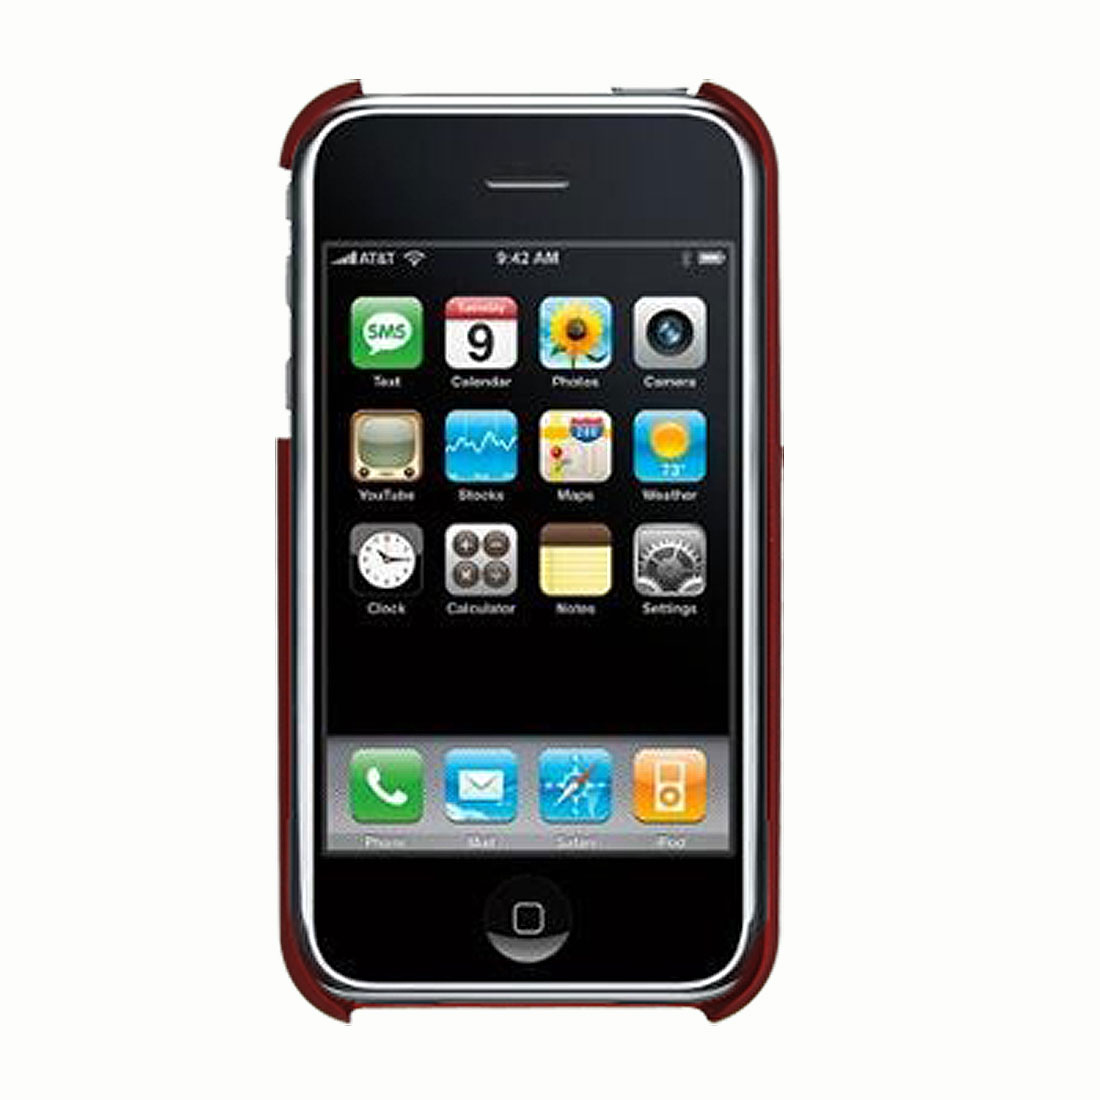 Crimson Hard Plastic Back Case w/ Flame Pattern for iPhone 3G and 3G S